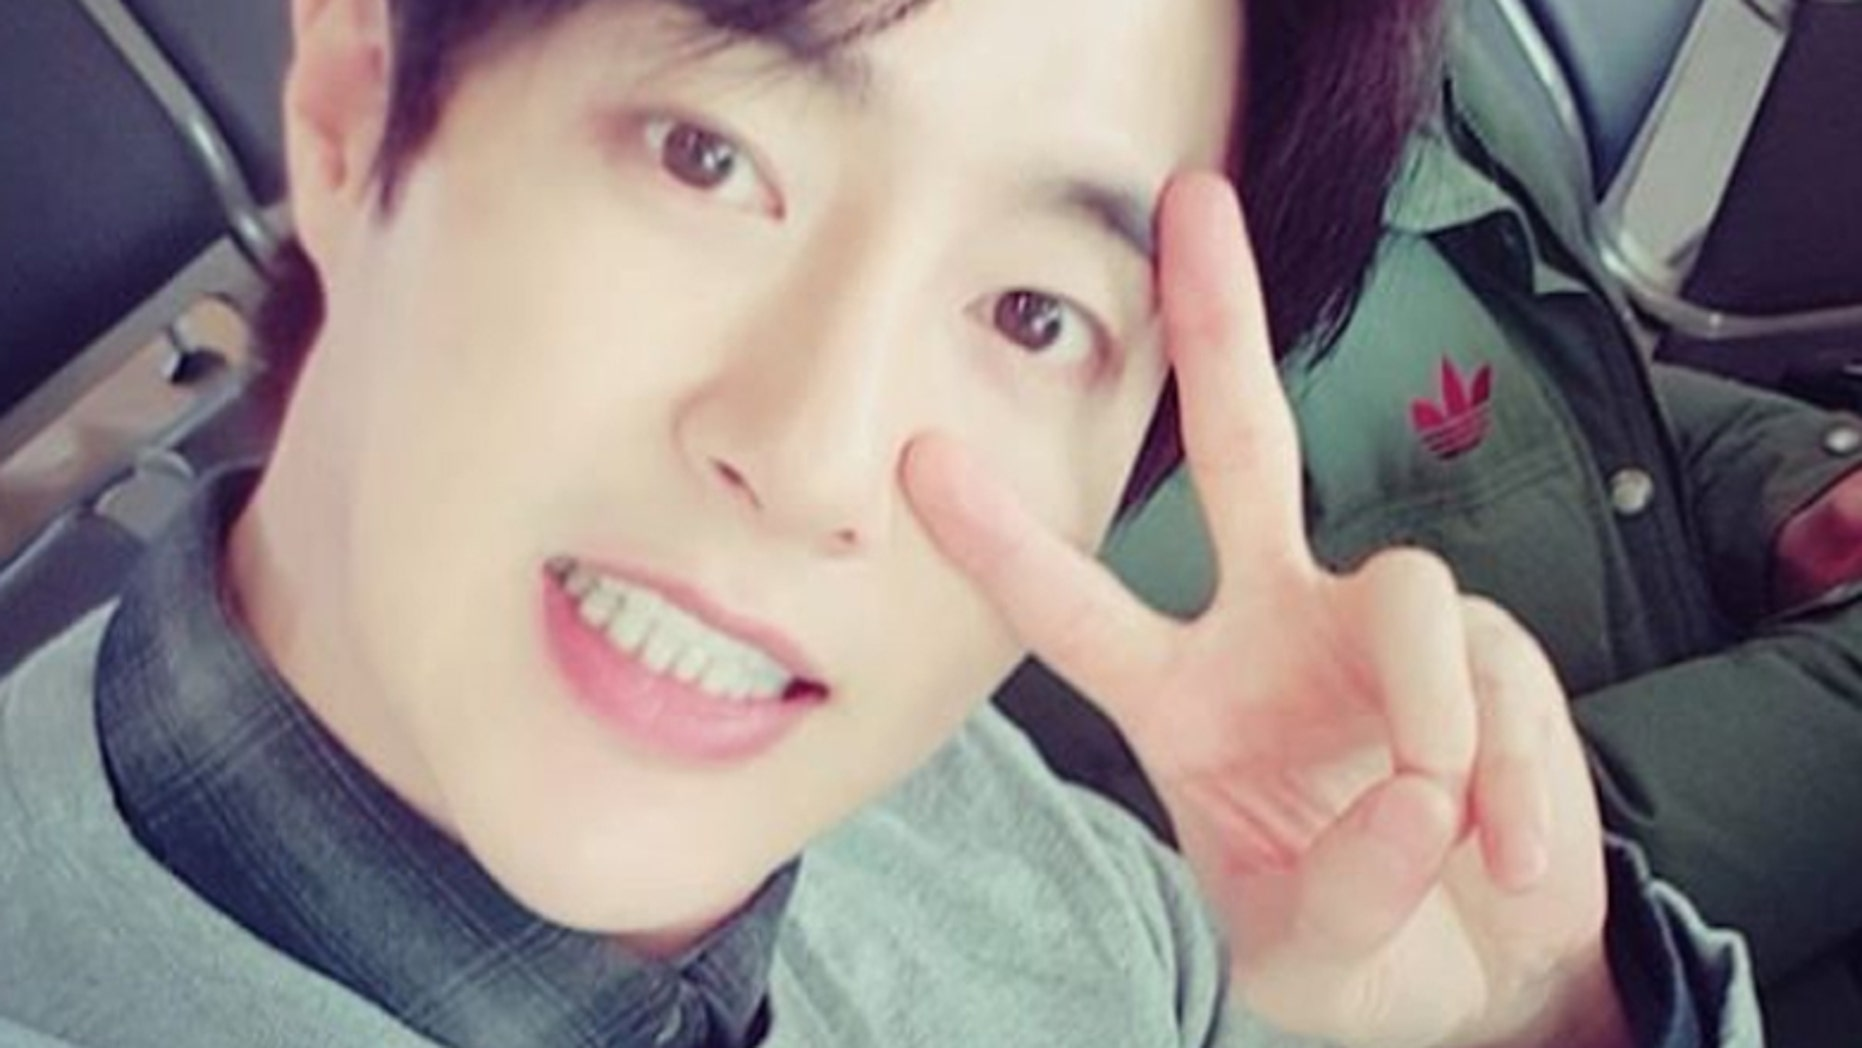 K-pop singer Seo Minwoo found dead at the age of 33.